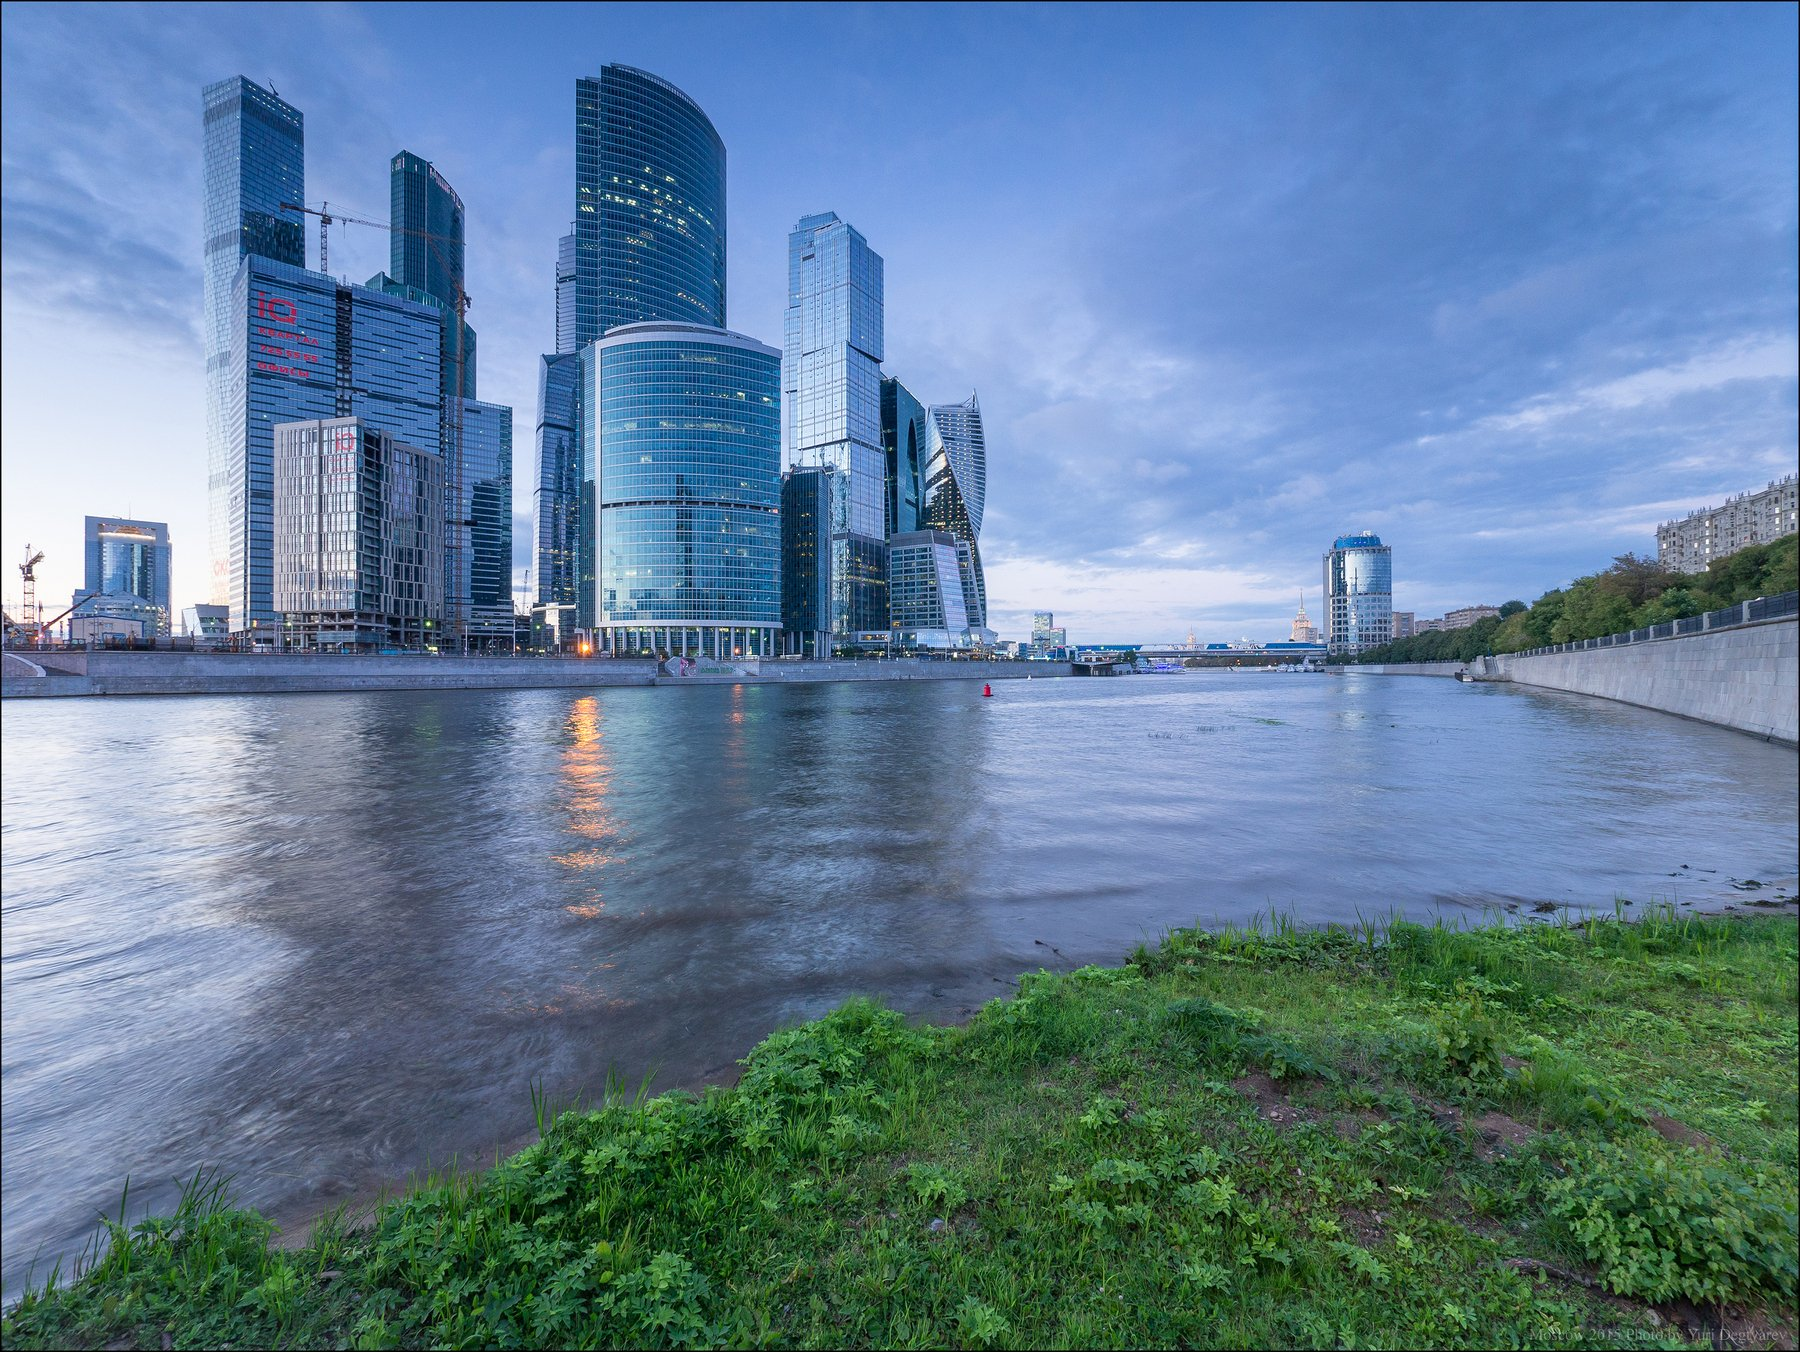 City, Evening, Moscow, River, Russia, Skyscrapers, Вечер, Город, Москва, Небоскребы, Река, Россия, Сити, Юрий Дегтярёв